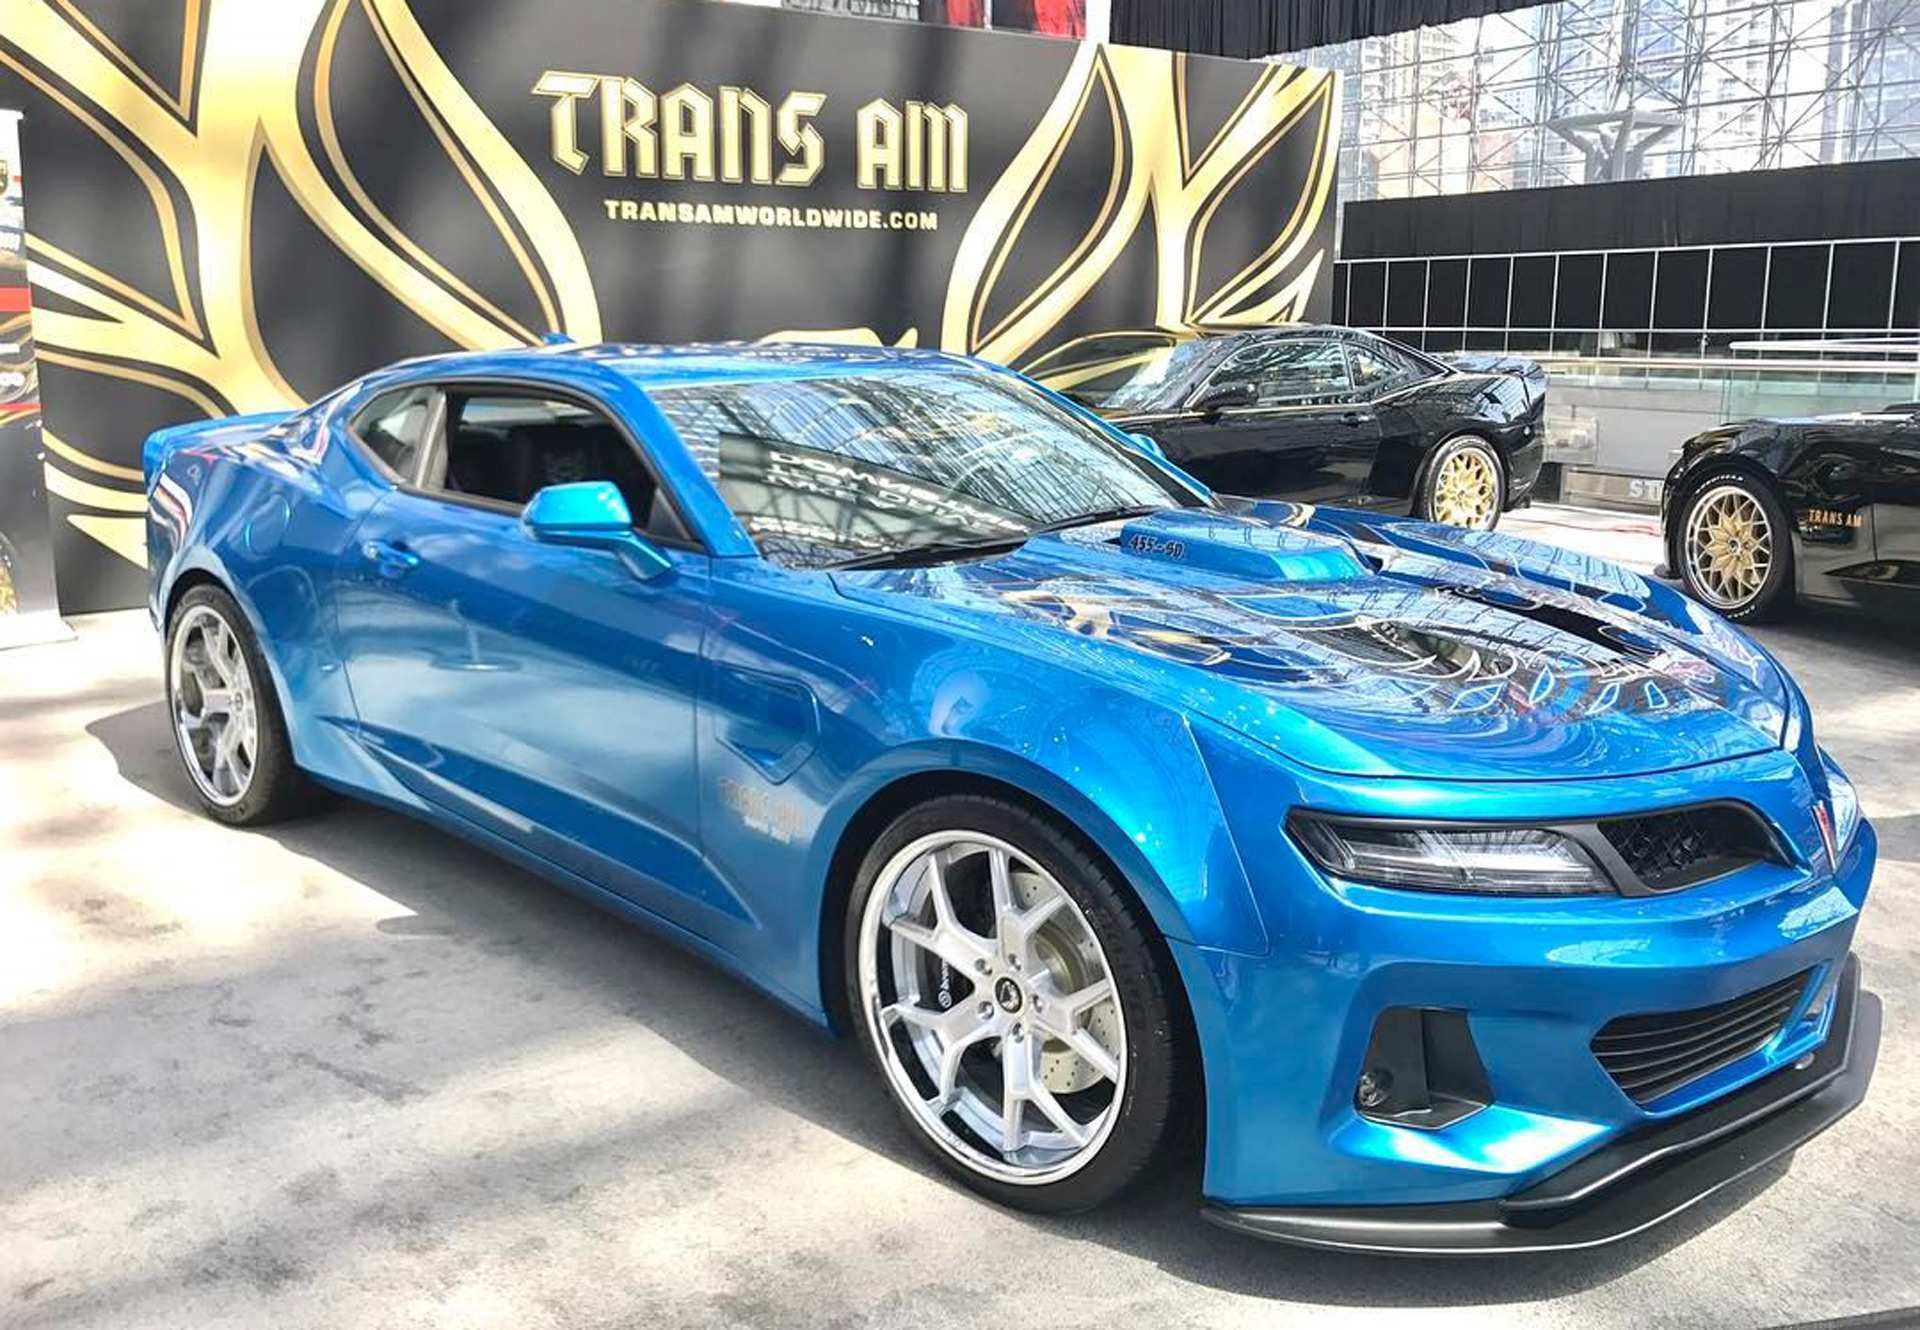 84 The Best 2020 Pontiac Trans Am Review And Release Date